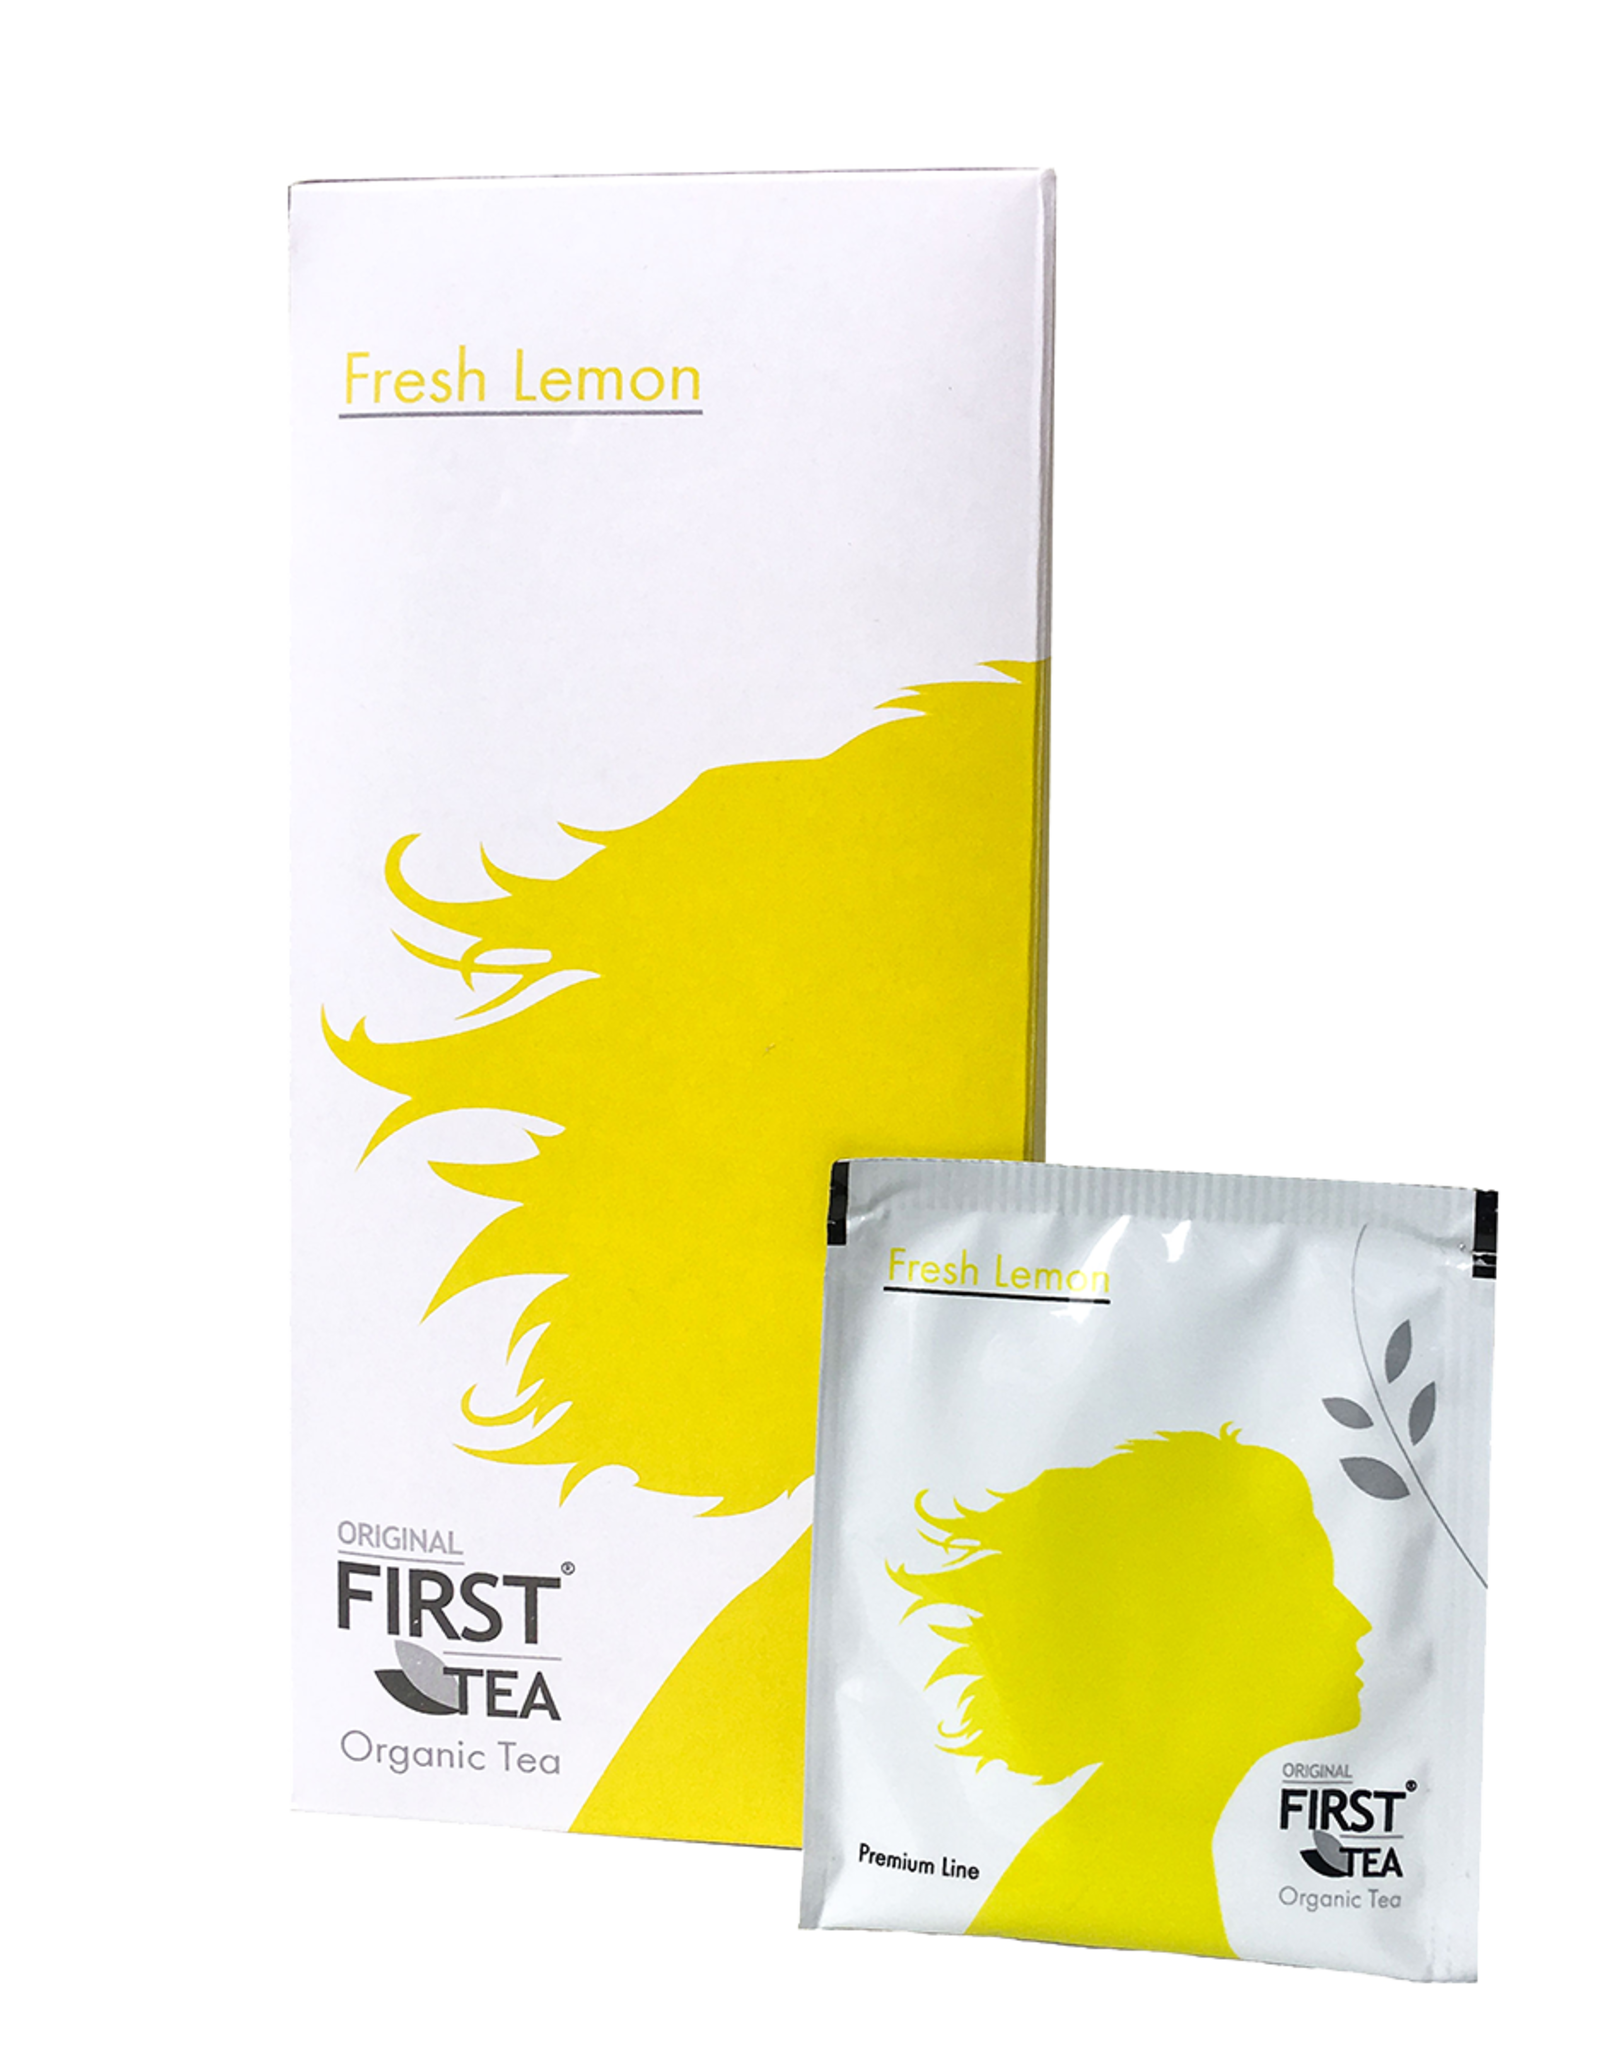 First Tea Premiumline Premium Line Fresh Lemon